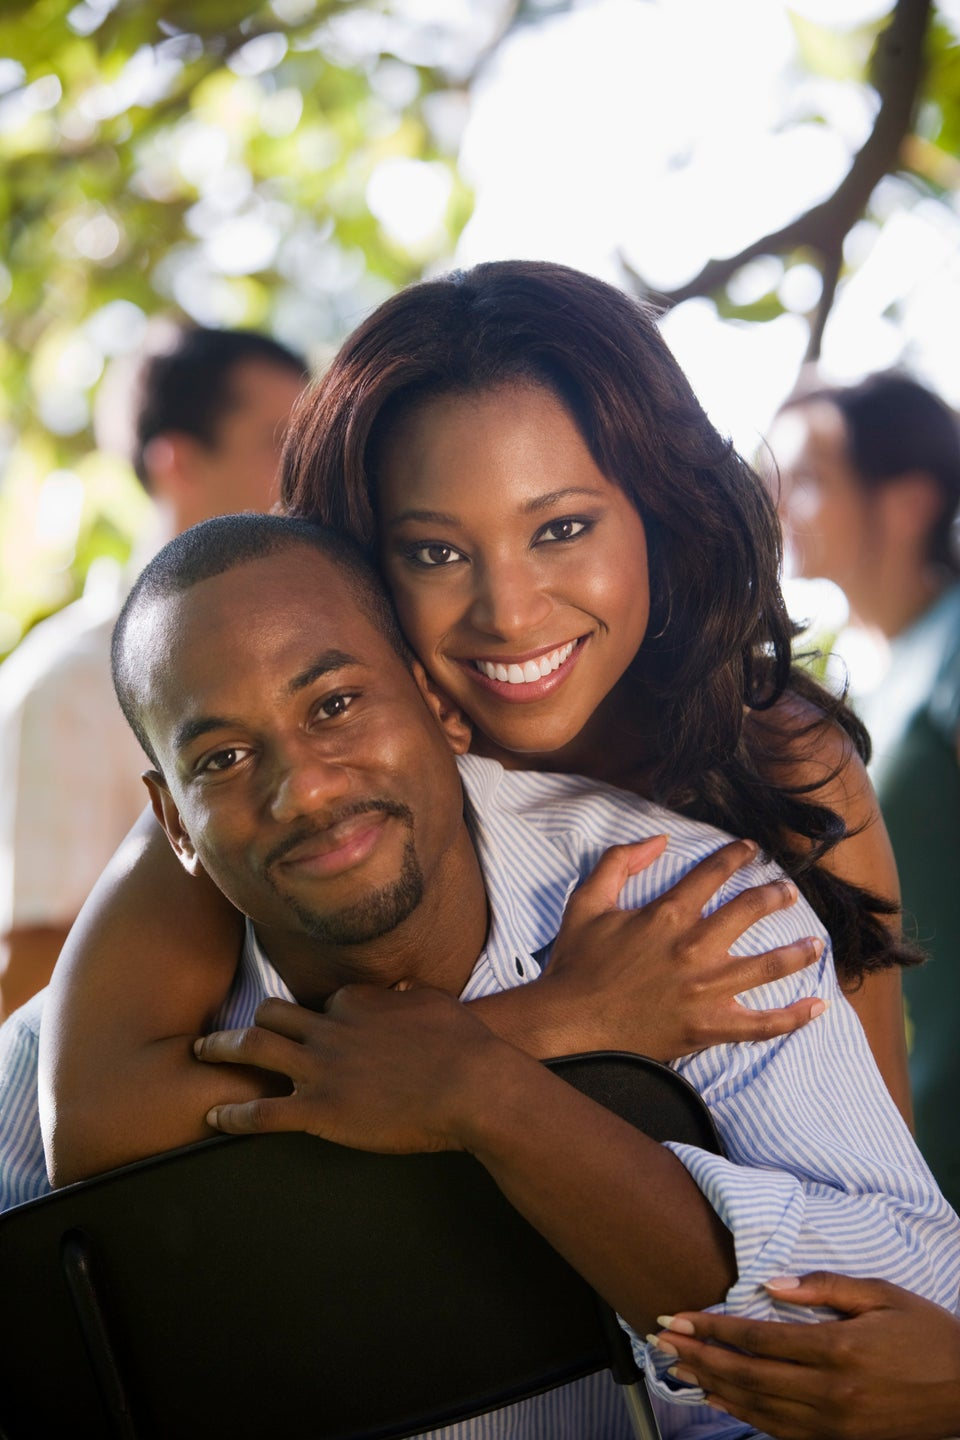 Girlfriends: Friendship Rules About Guys Never to Break